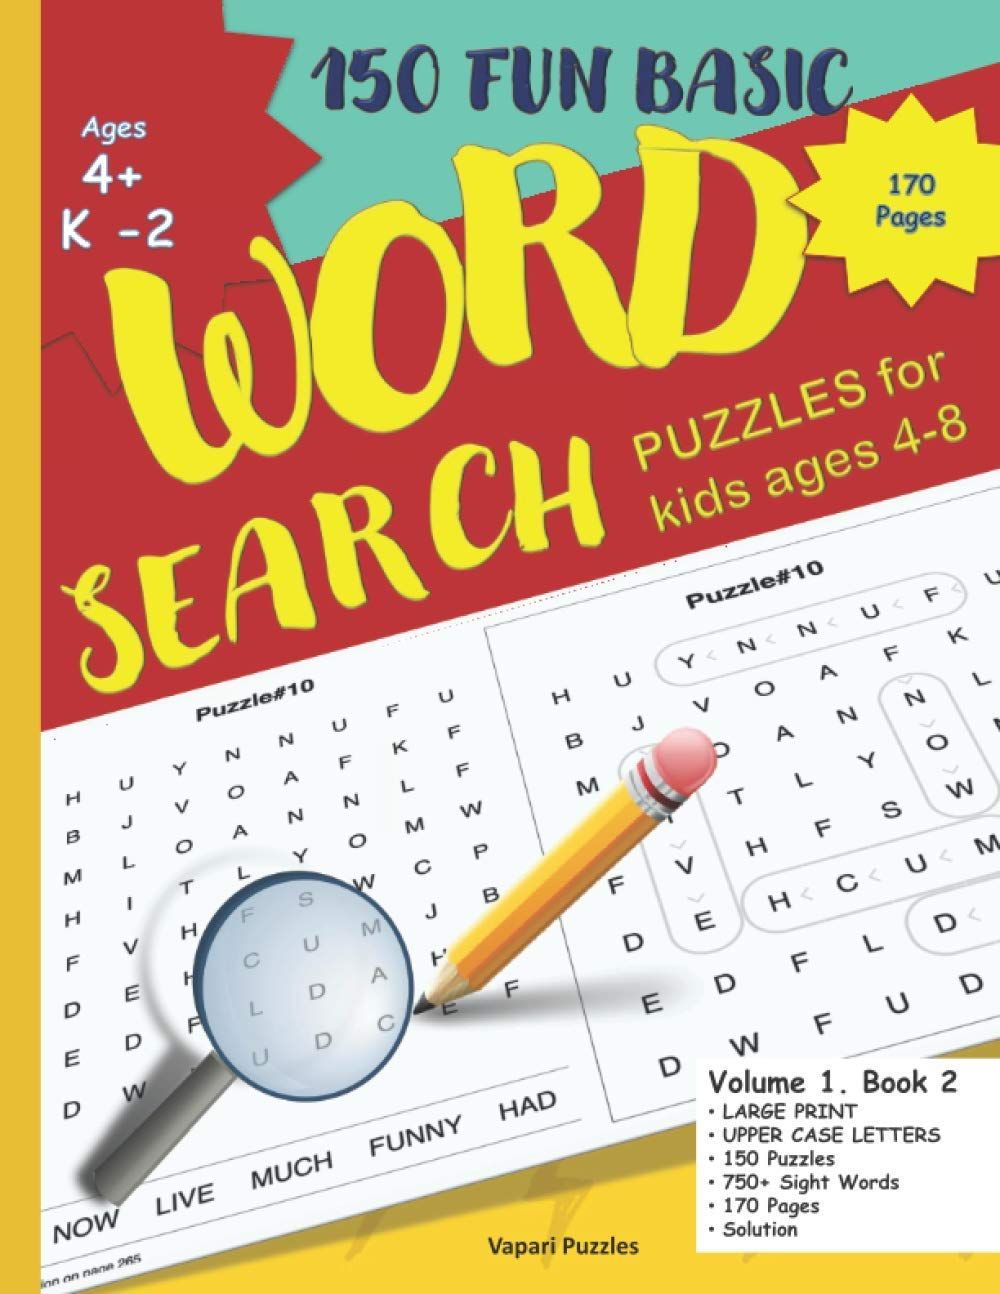 150 Fun Basic Word Search Puzzles For Kids Ages 4 8 Word Puzzle Activity Book For Kids With Sol Puzzles For Kids Word Puzzles Book Activities